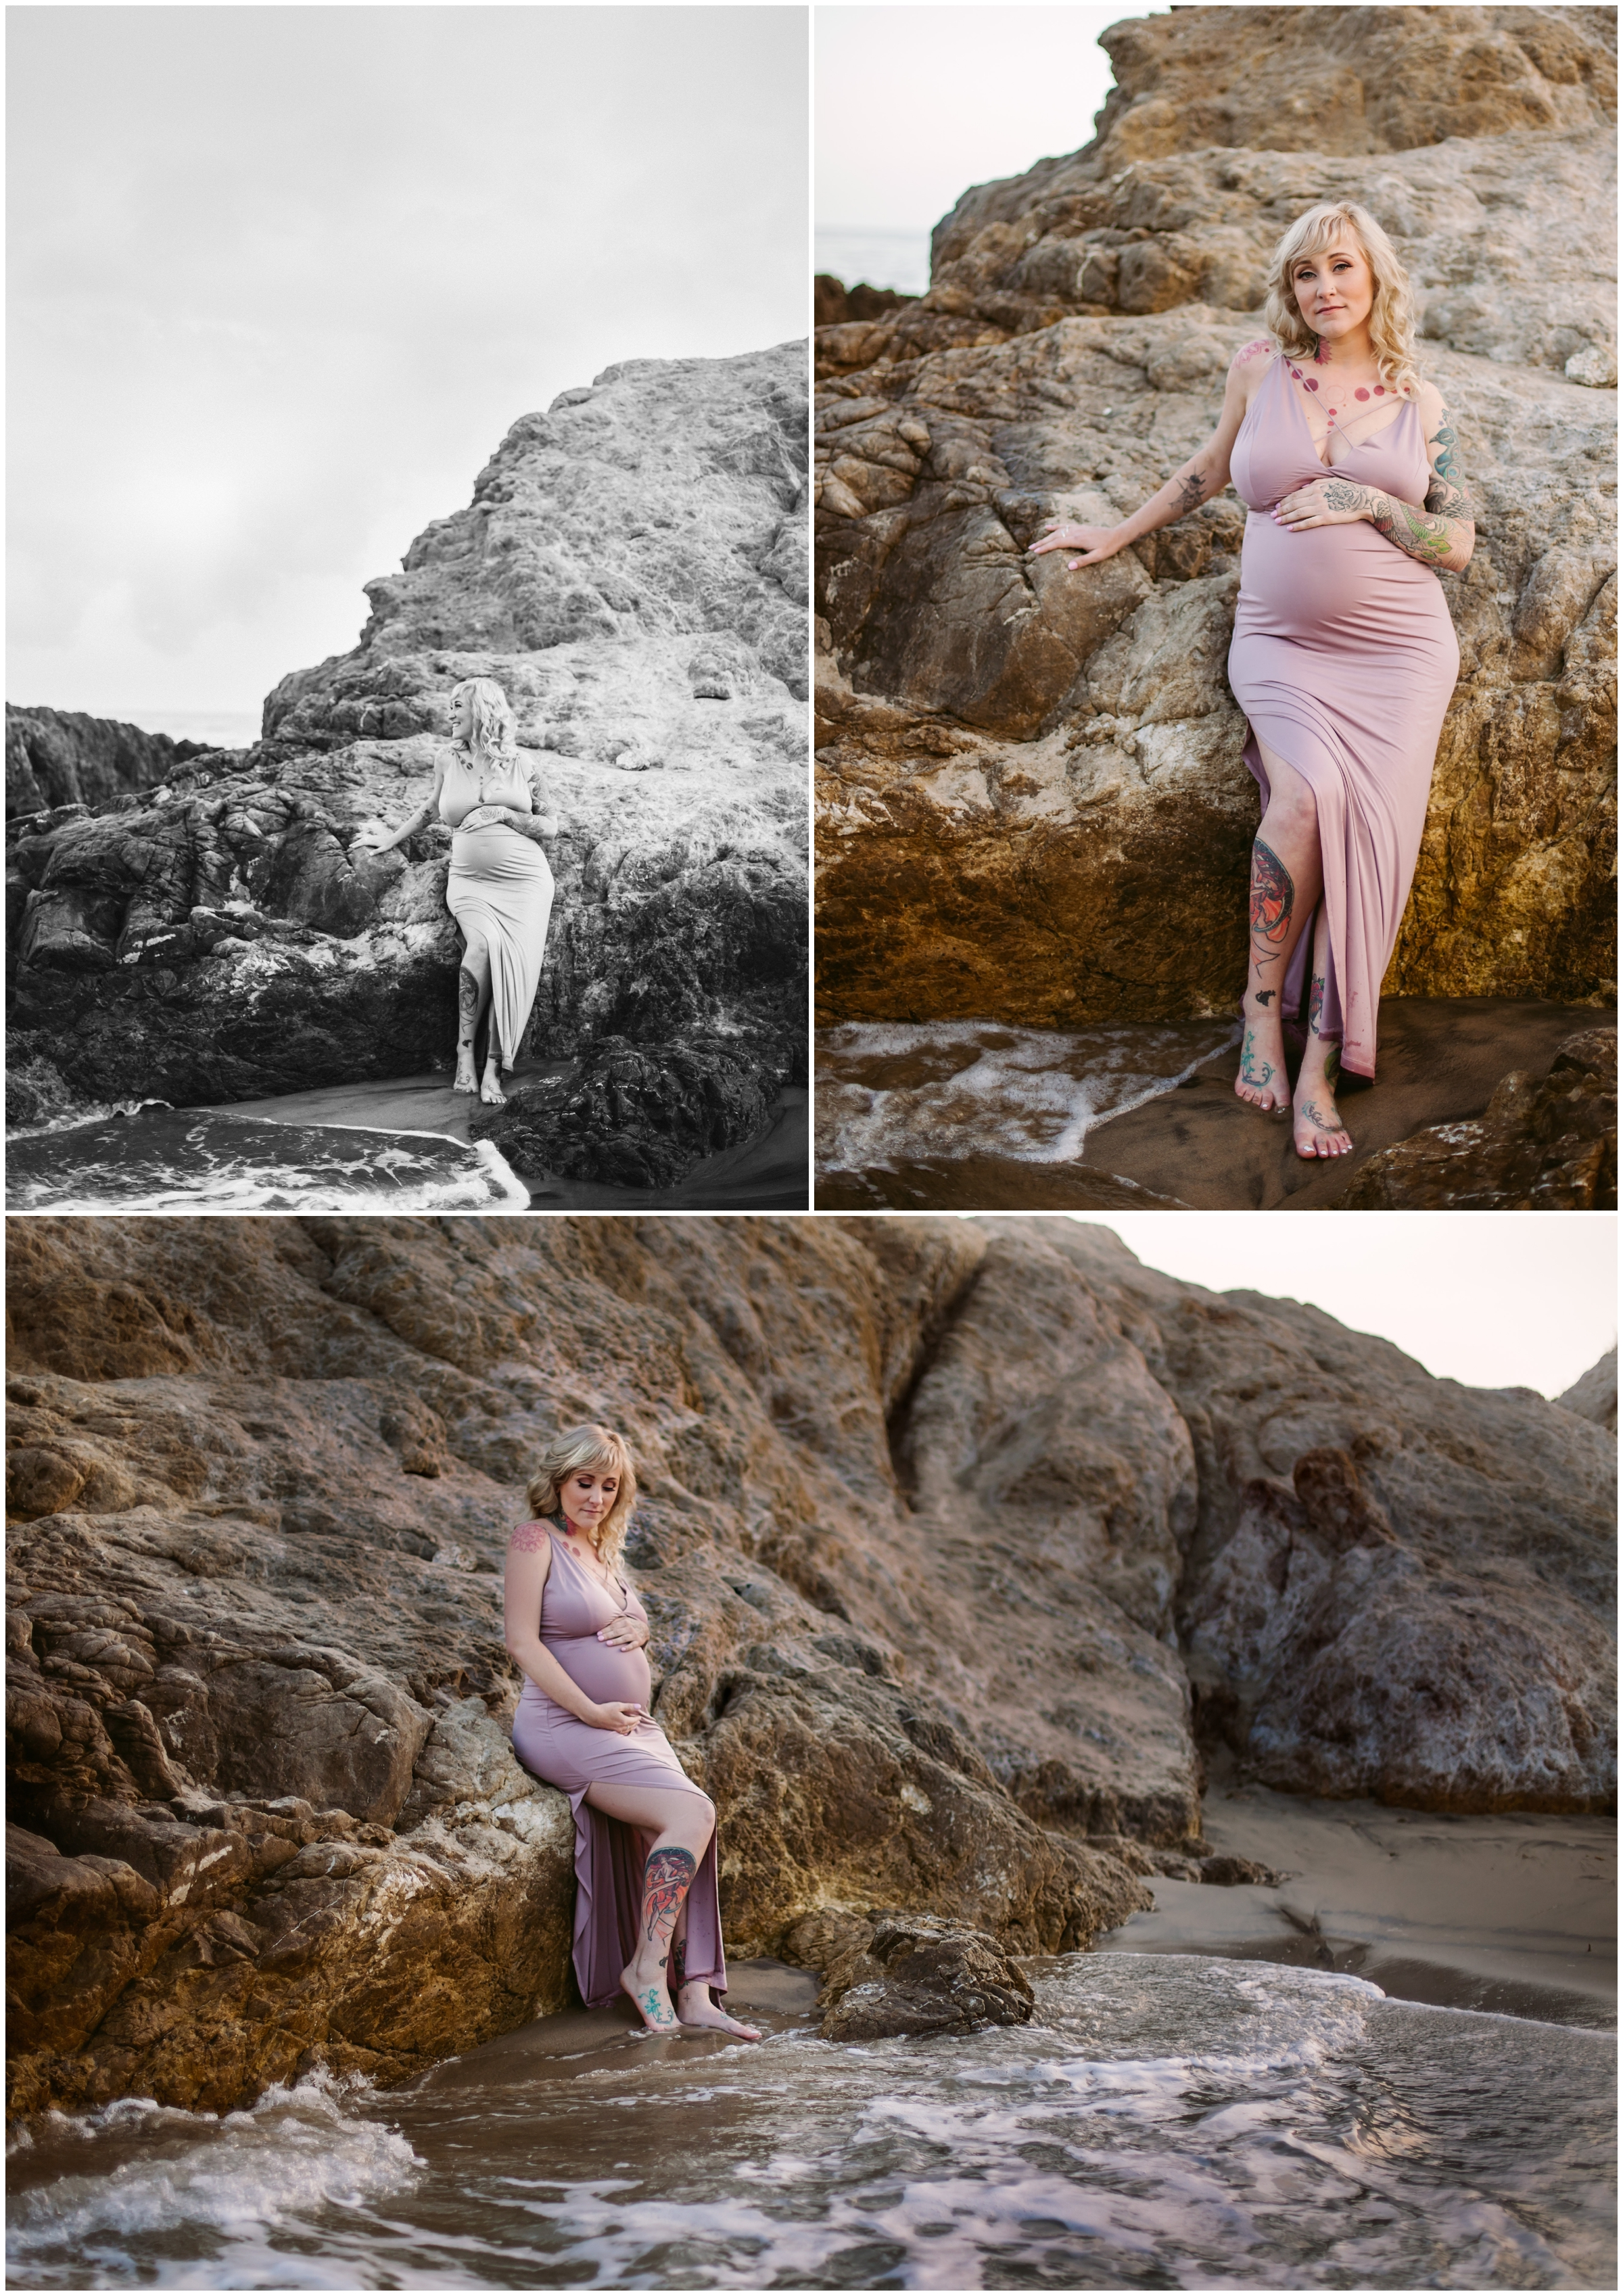 Maternity Portraits on a rocky beach by Just Maggie Photography - Los Angeles Maternity & Baby Photographer